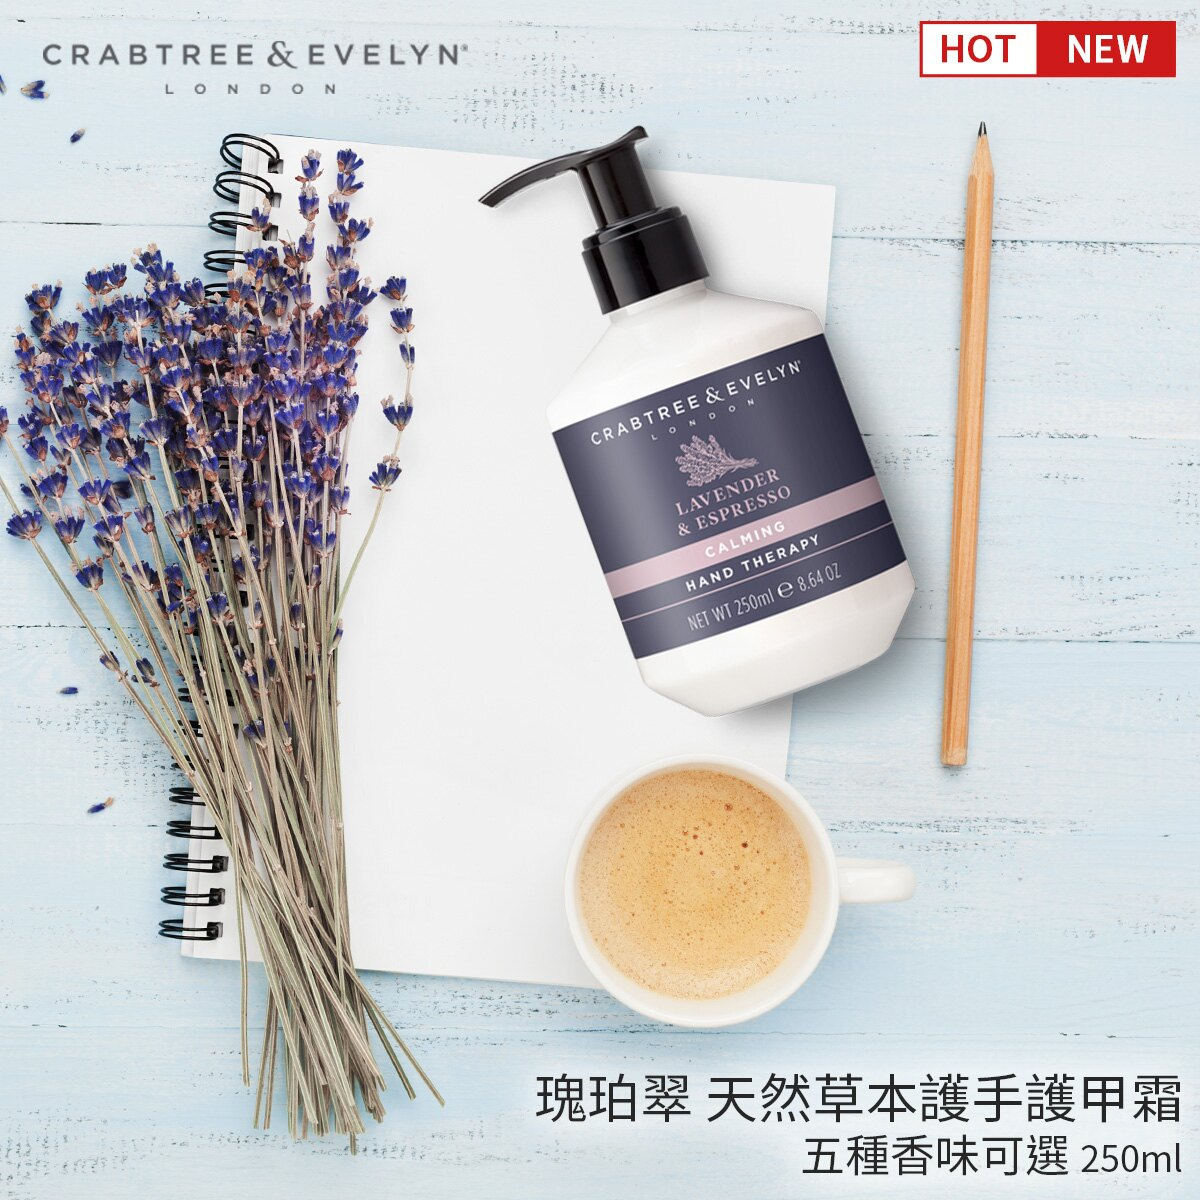 瑰珀翠 Crabtree & Evelyn 天然草本護手護甲霜 250ml 五種香味可選  交換禮物  【SP嚴選家】 0